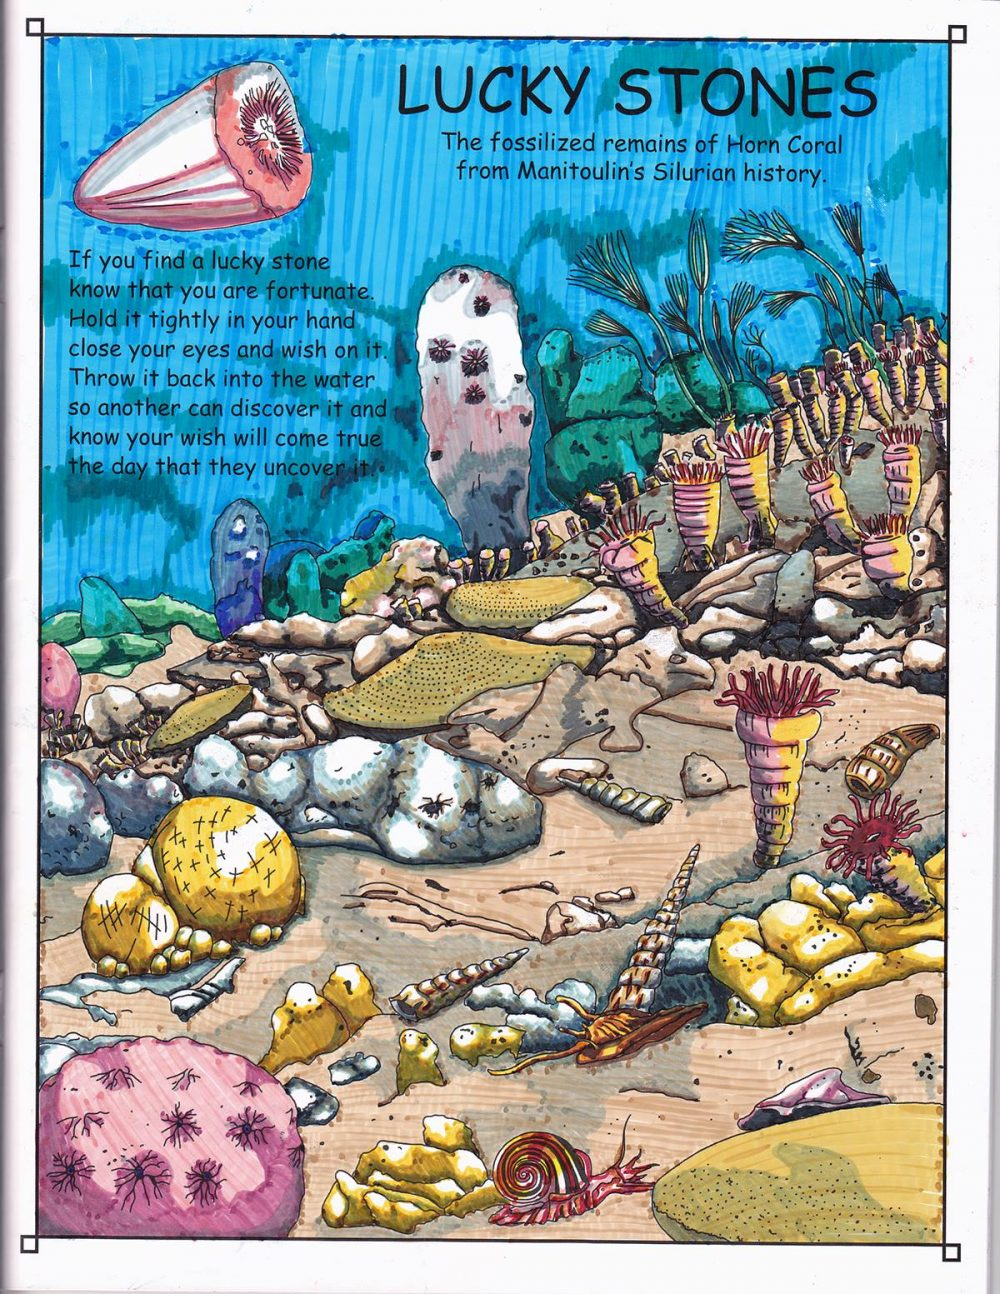 manitoulin island ontario canada great lakes huron coral fossils history adult coloring books